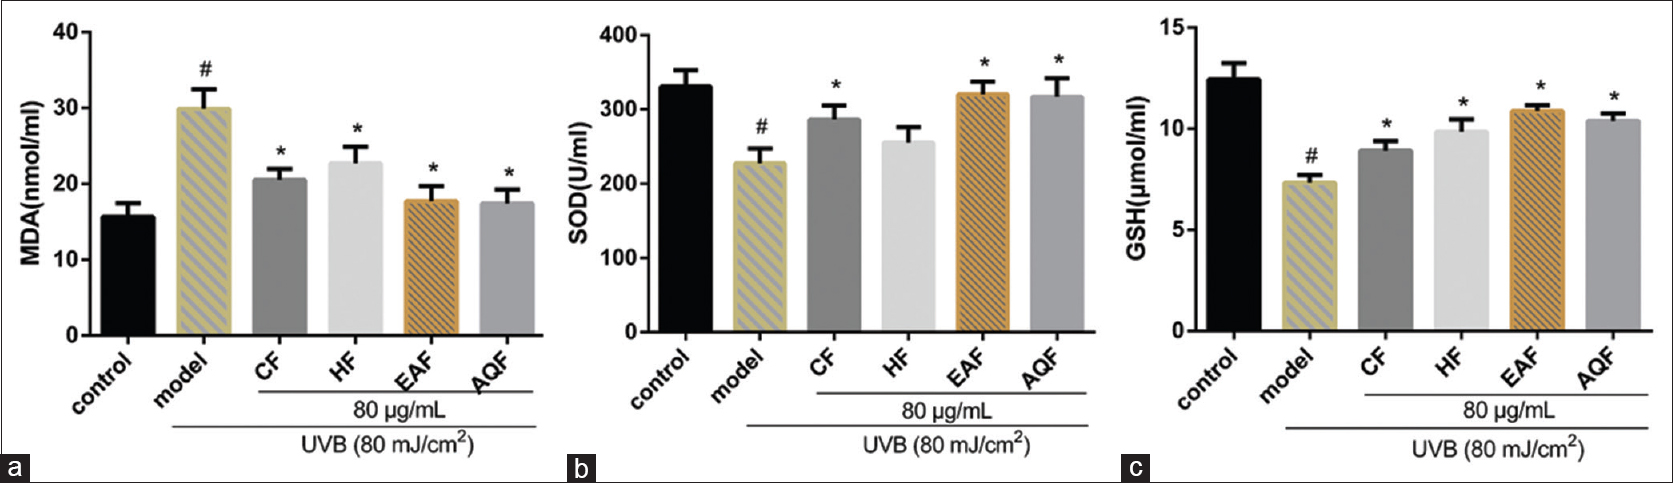 Figure 7: Effects of <i>Gracilaria lemaneiformis</i> extracts on the MDA, SOD, and GSH levels in HaCaT cells exposed to UVB. Cells were incubated with 80 μg/mL extracts for 24 h and irradiated by 80 mJ/cm<sup>2</sup> UVB. The activities of MDA (a), SOD (b), and GSH (c) were then measured using a reagent kit. Versus the control and <i>P</i> < 0.05 indicated by<sup>#</sup>, versus UVB model group and <i>P</i> < 0.05 indicated by*. UNB: Ultraviolet B; MDA: Malondialdehyde; SOD: Superoxide dismutase; GSH: Glutathione